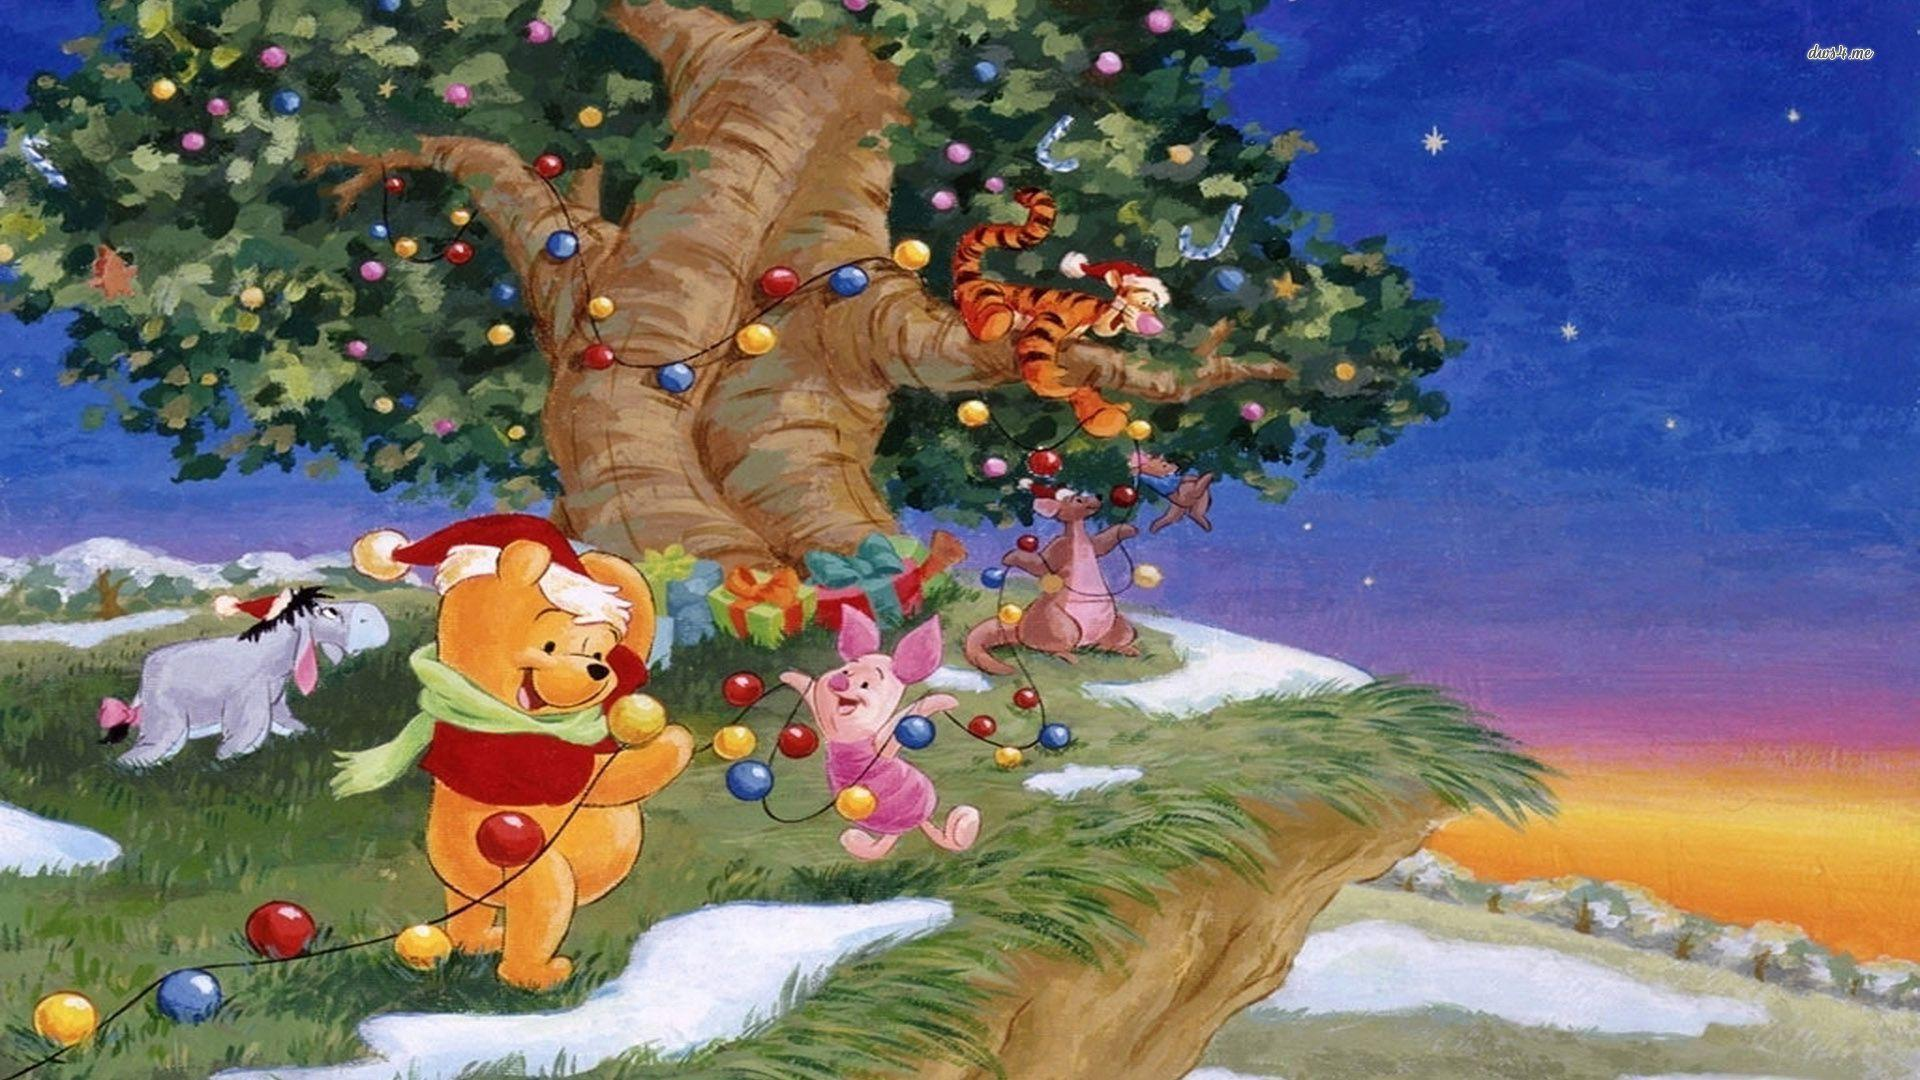 winnie the pooh christmas wallpapers wallpaper cave. Black Bedroom Furniture Sets. Home Design Ideas